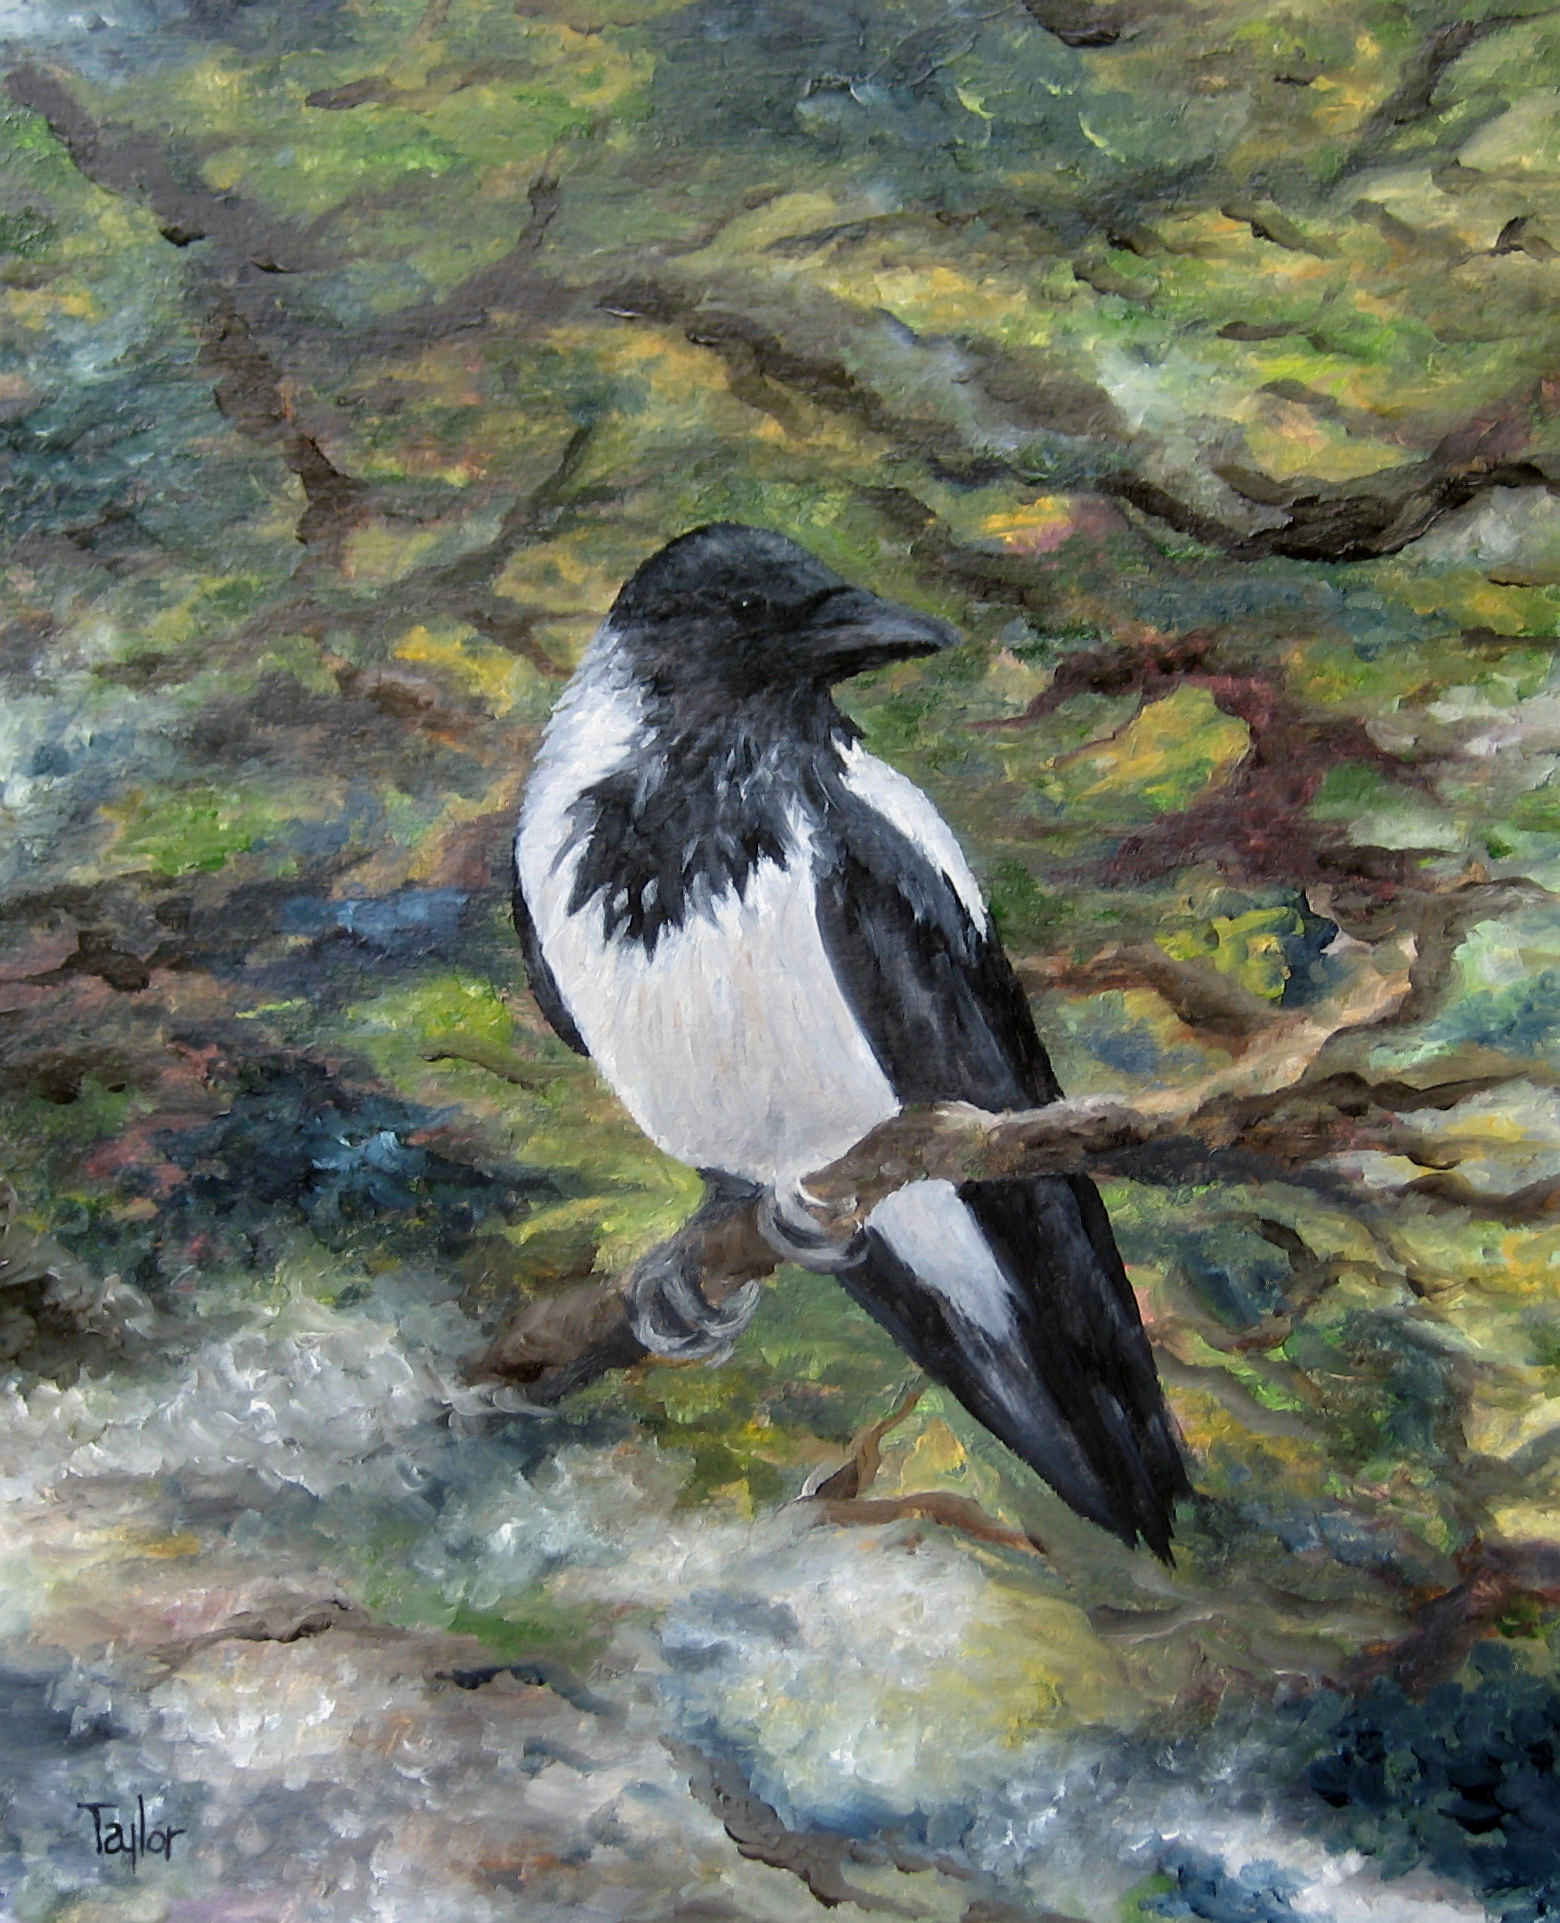 New Artwork: Hooded Crow